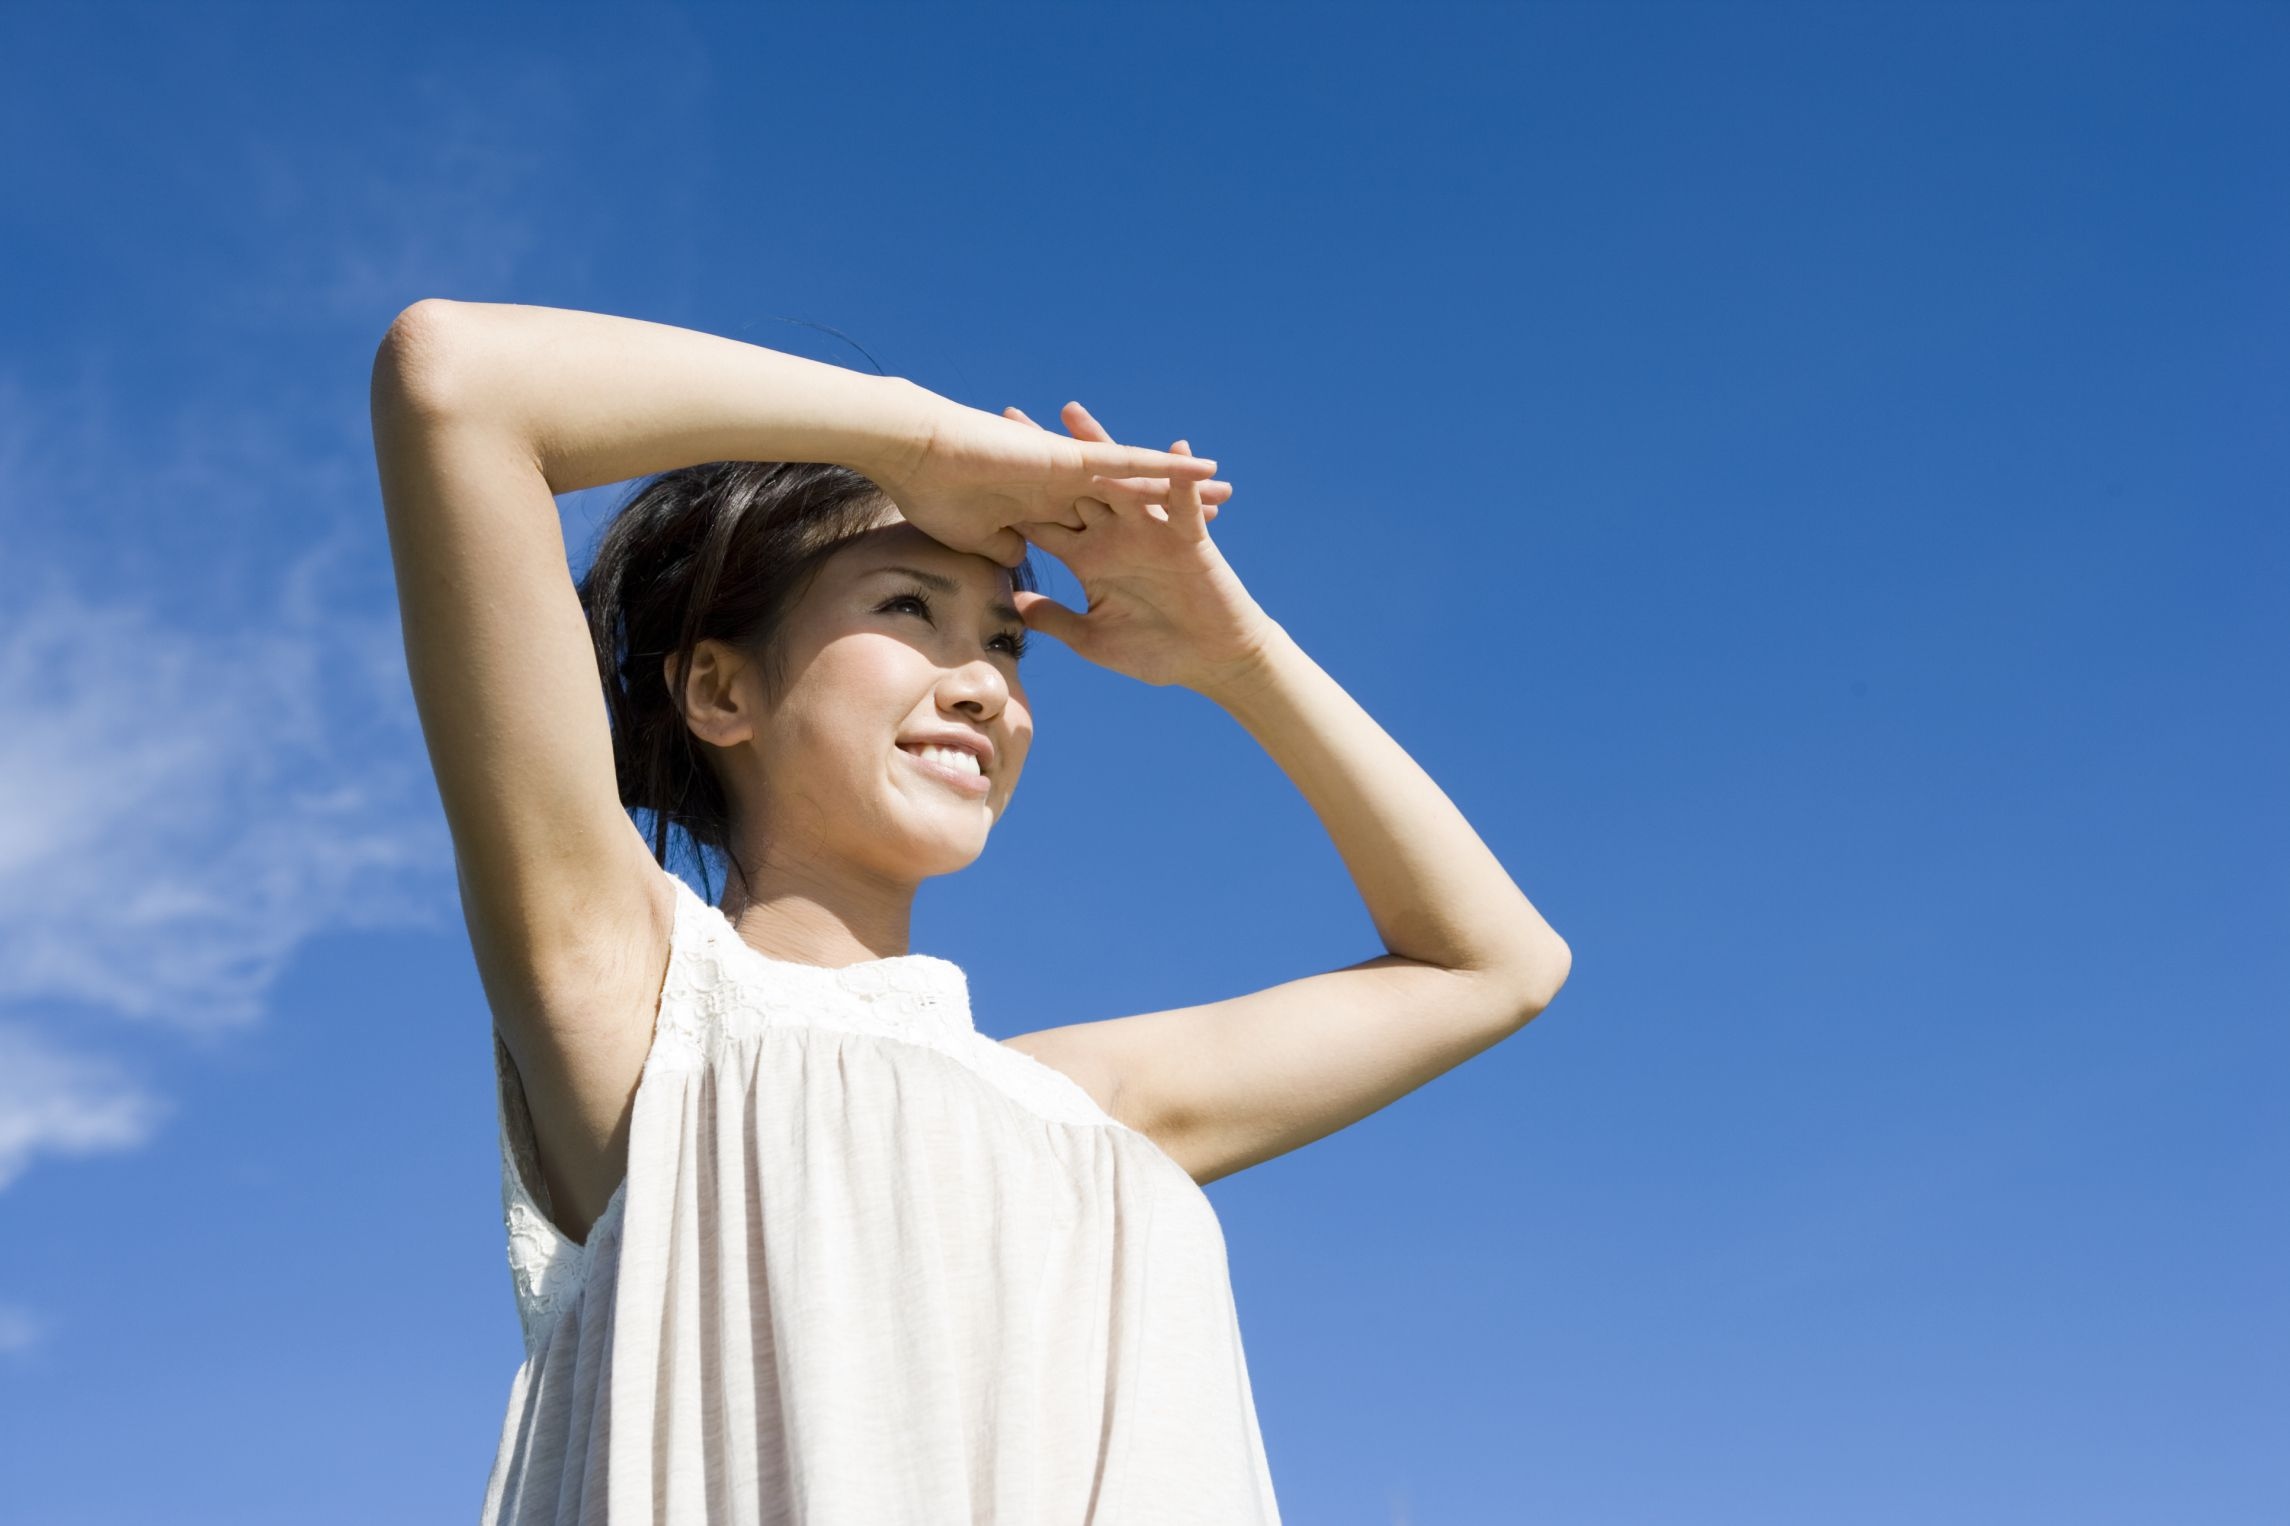 A woman shades her eyes from bright sunlight to see into the distance